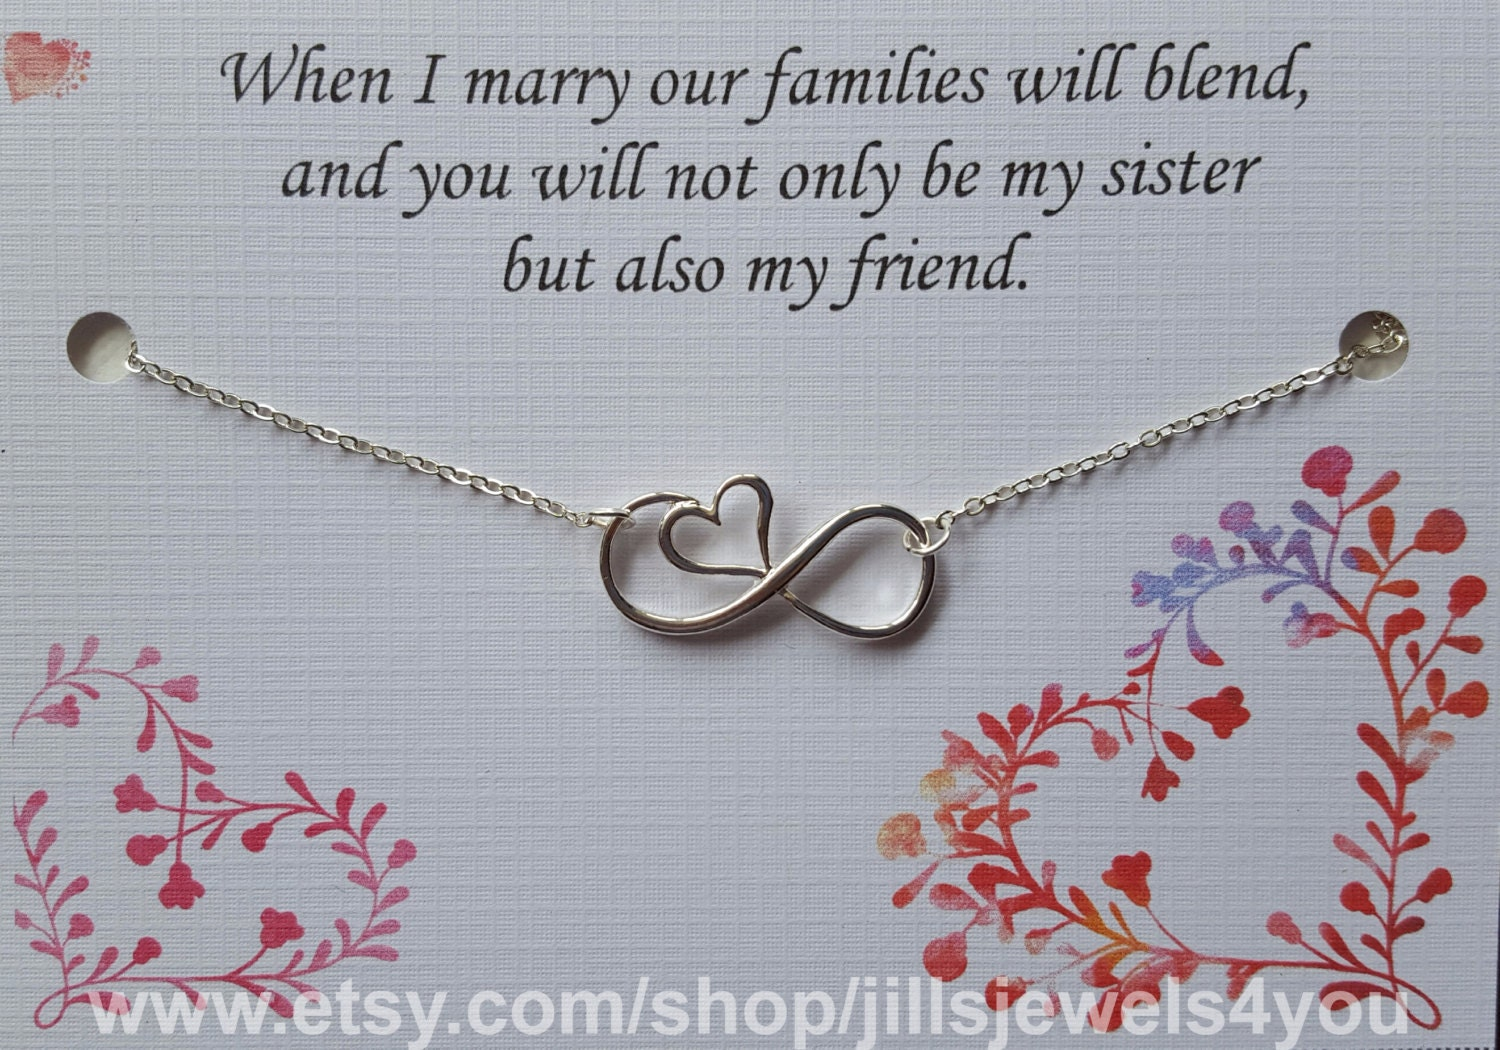 Wedding Gifts For Sister In Law: Sister Wedding Gift Sister In Law Gift Bridal Party